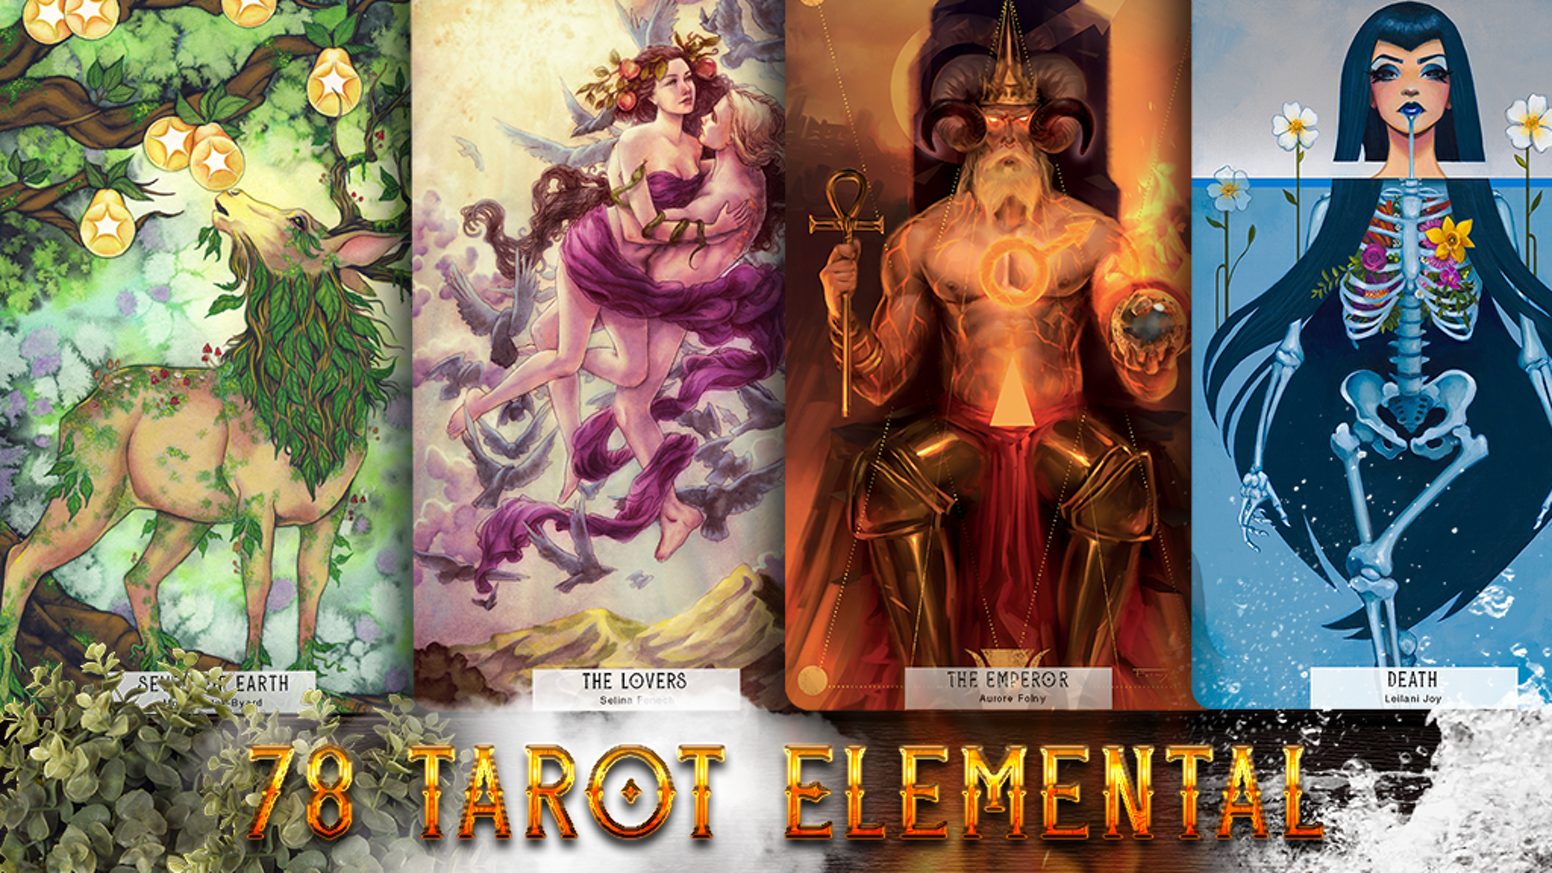 78 Tarot returns to Kickstarter to fund their 6th collaborative Tarot deck - 78 Tarot Elemental, Tarot of the Natural